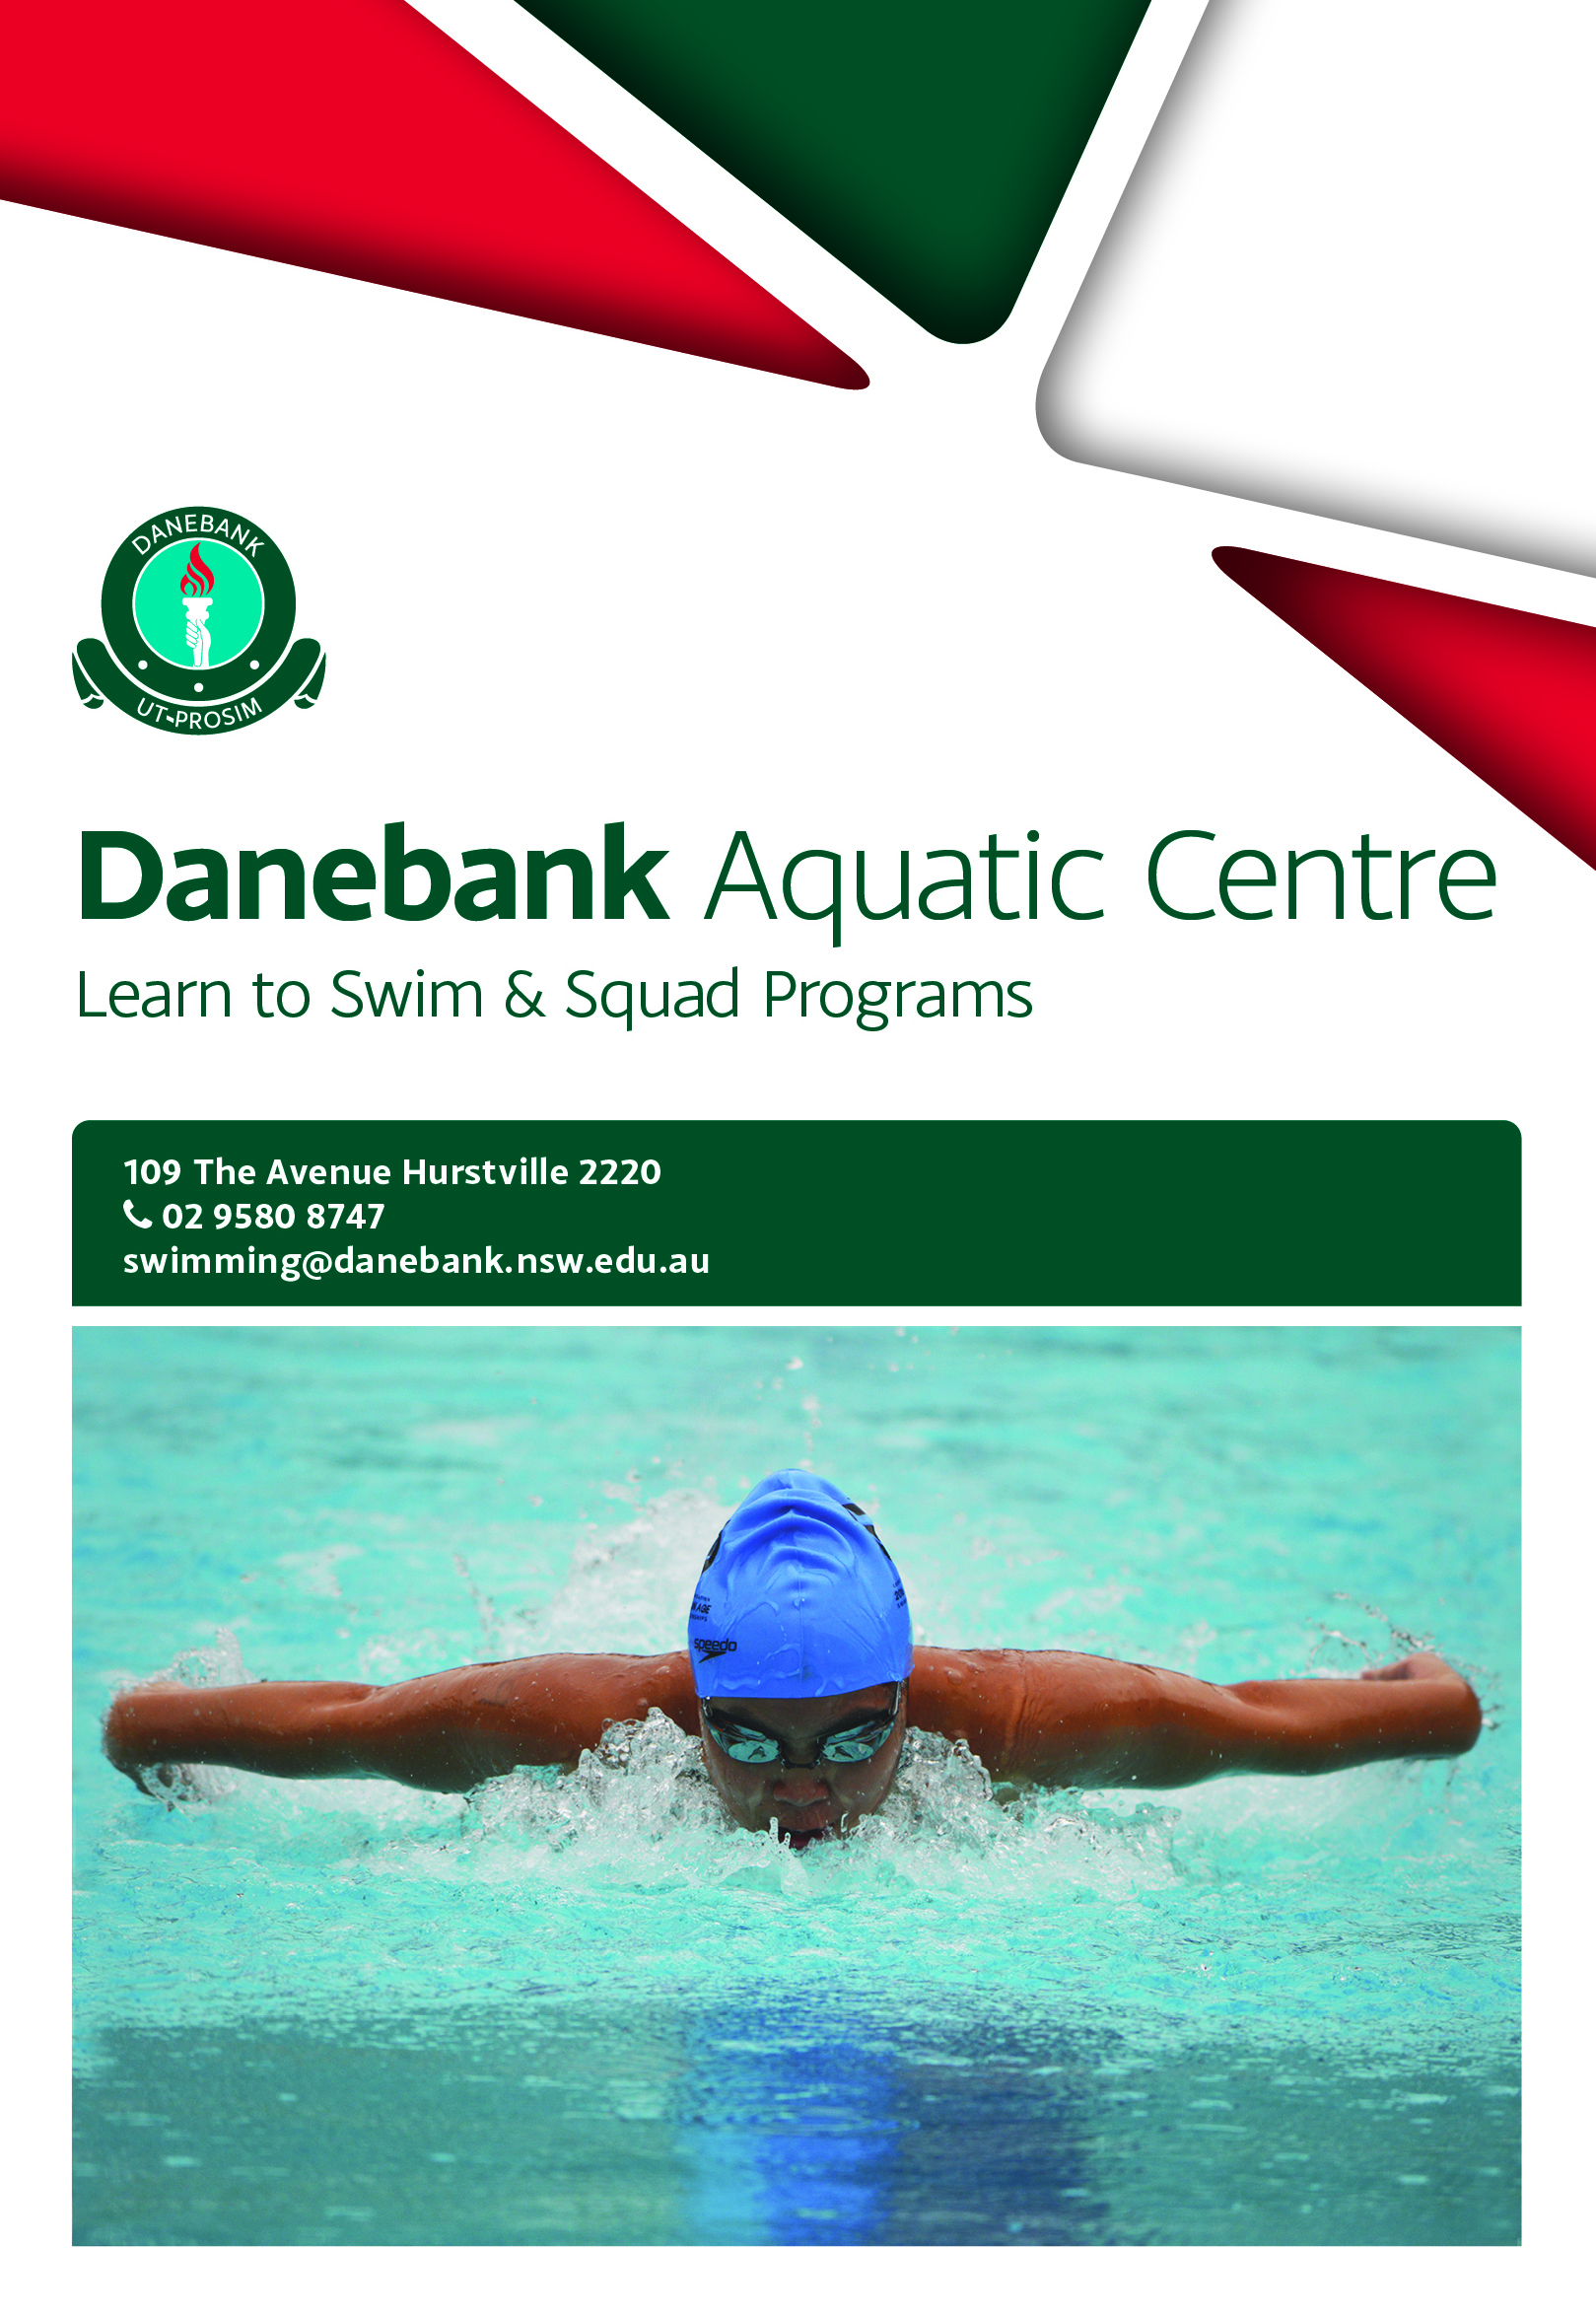 Aquatic Centre brochure 2020